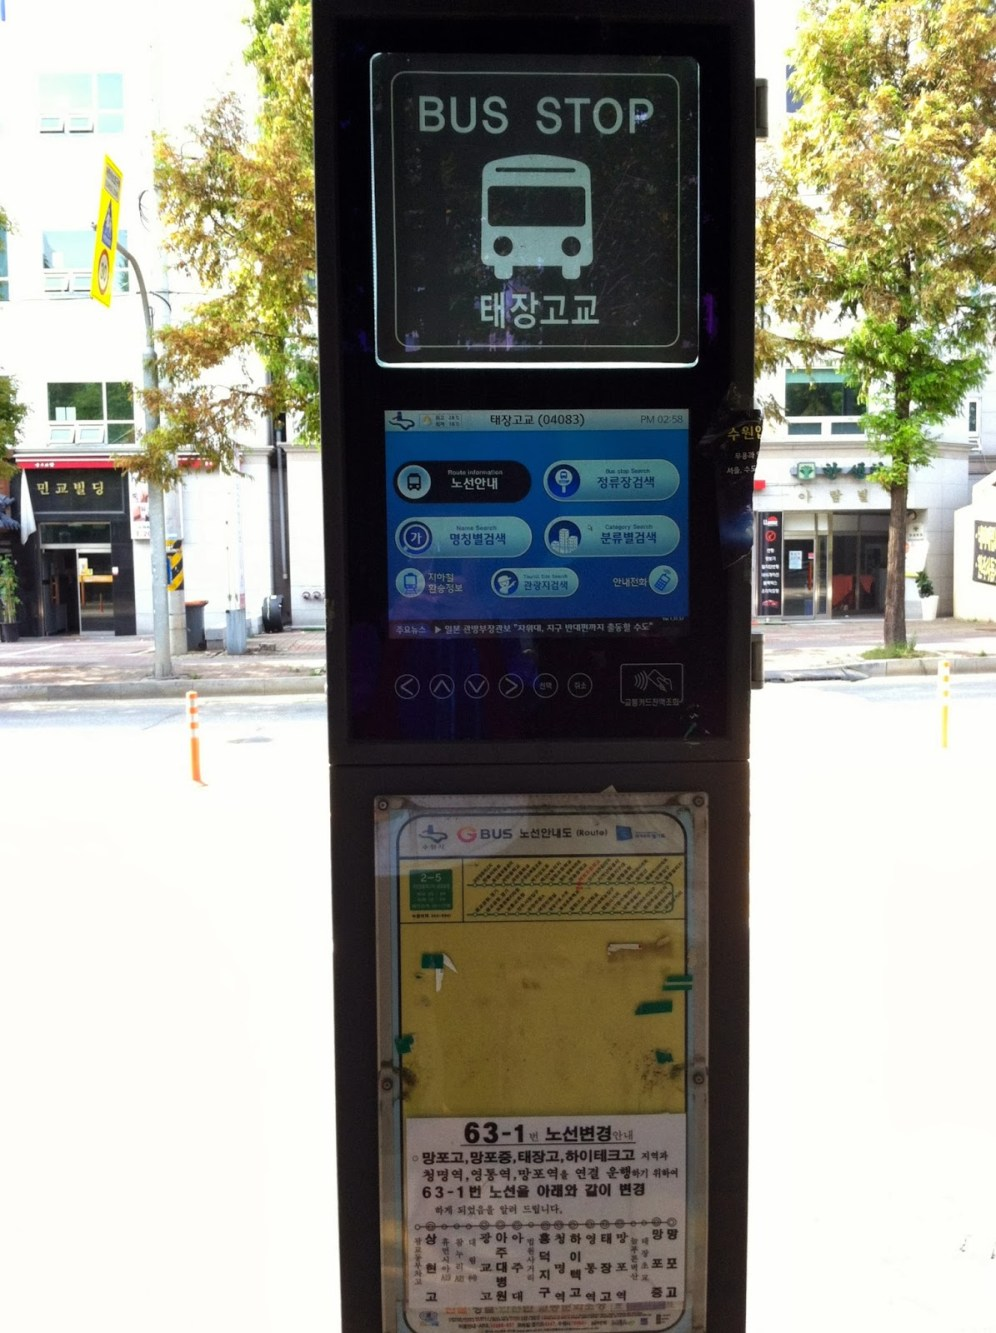 touch screen station maps to help you get around.